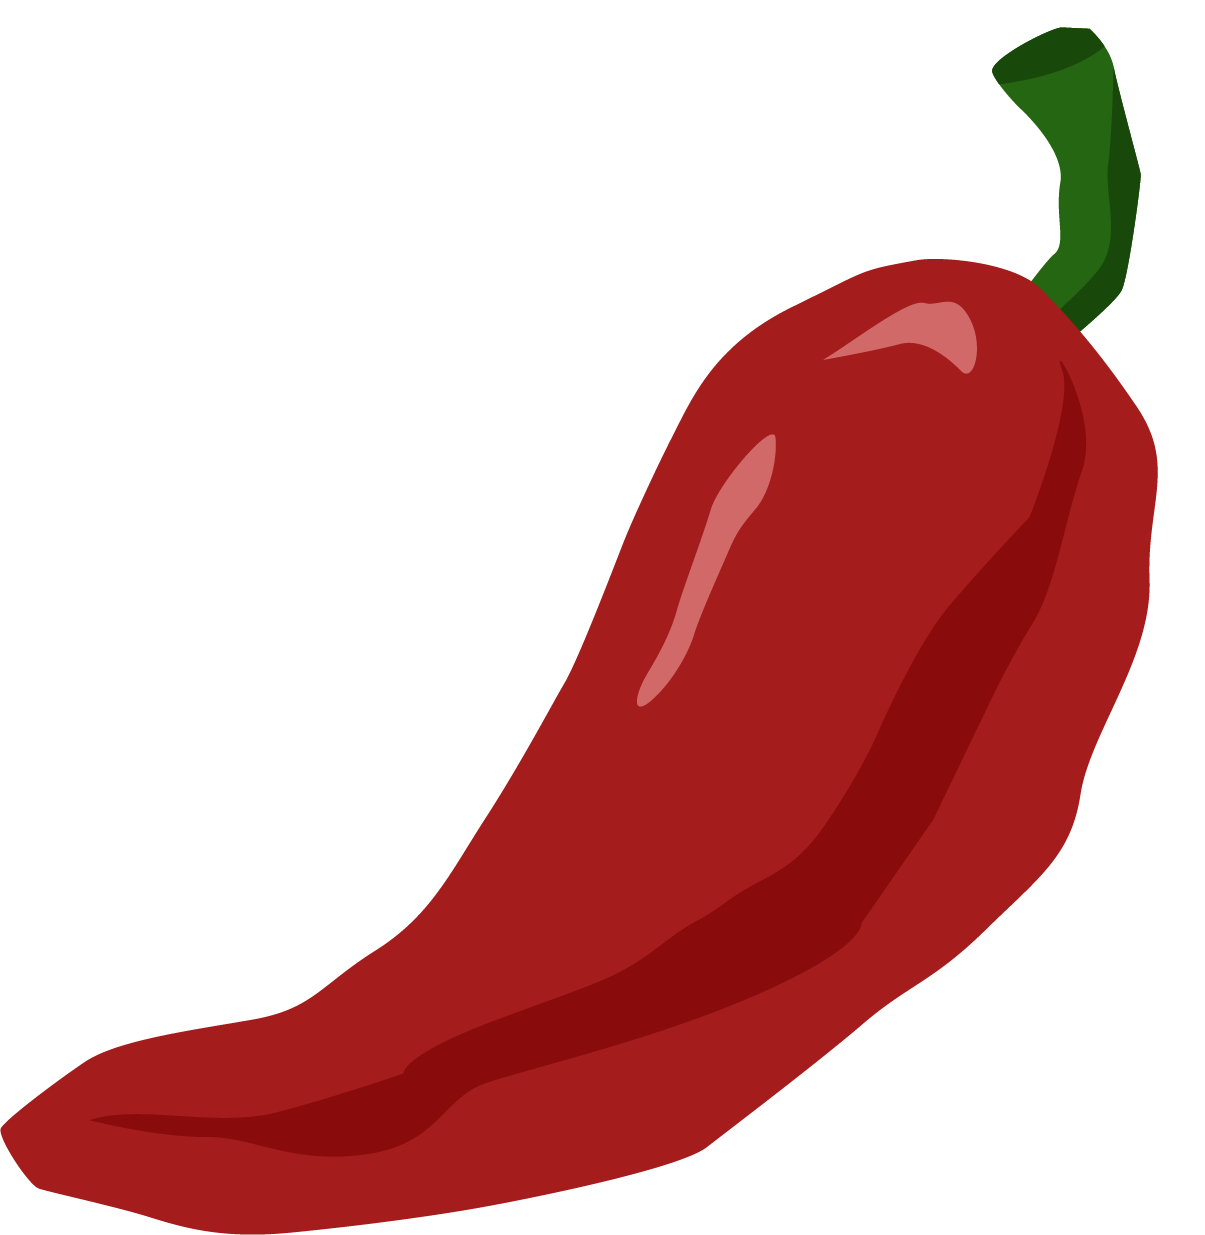 RedChile.png